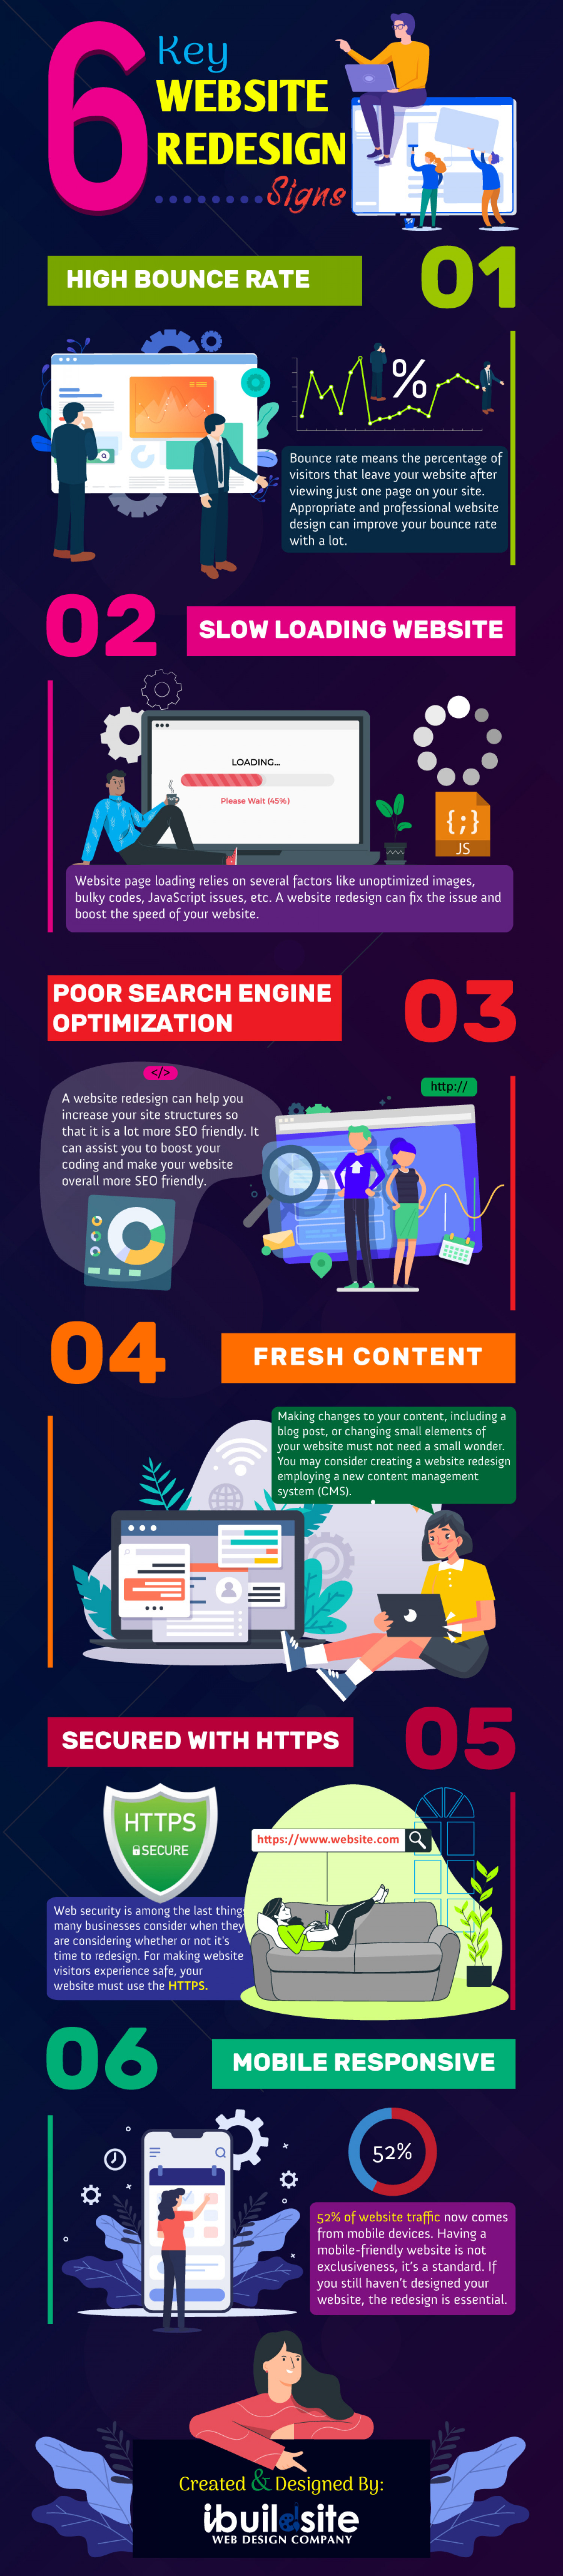 6 Basic Signs Show It's Time for a Website Redesign Infographic